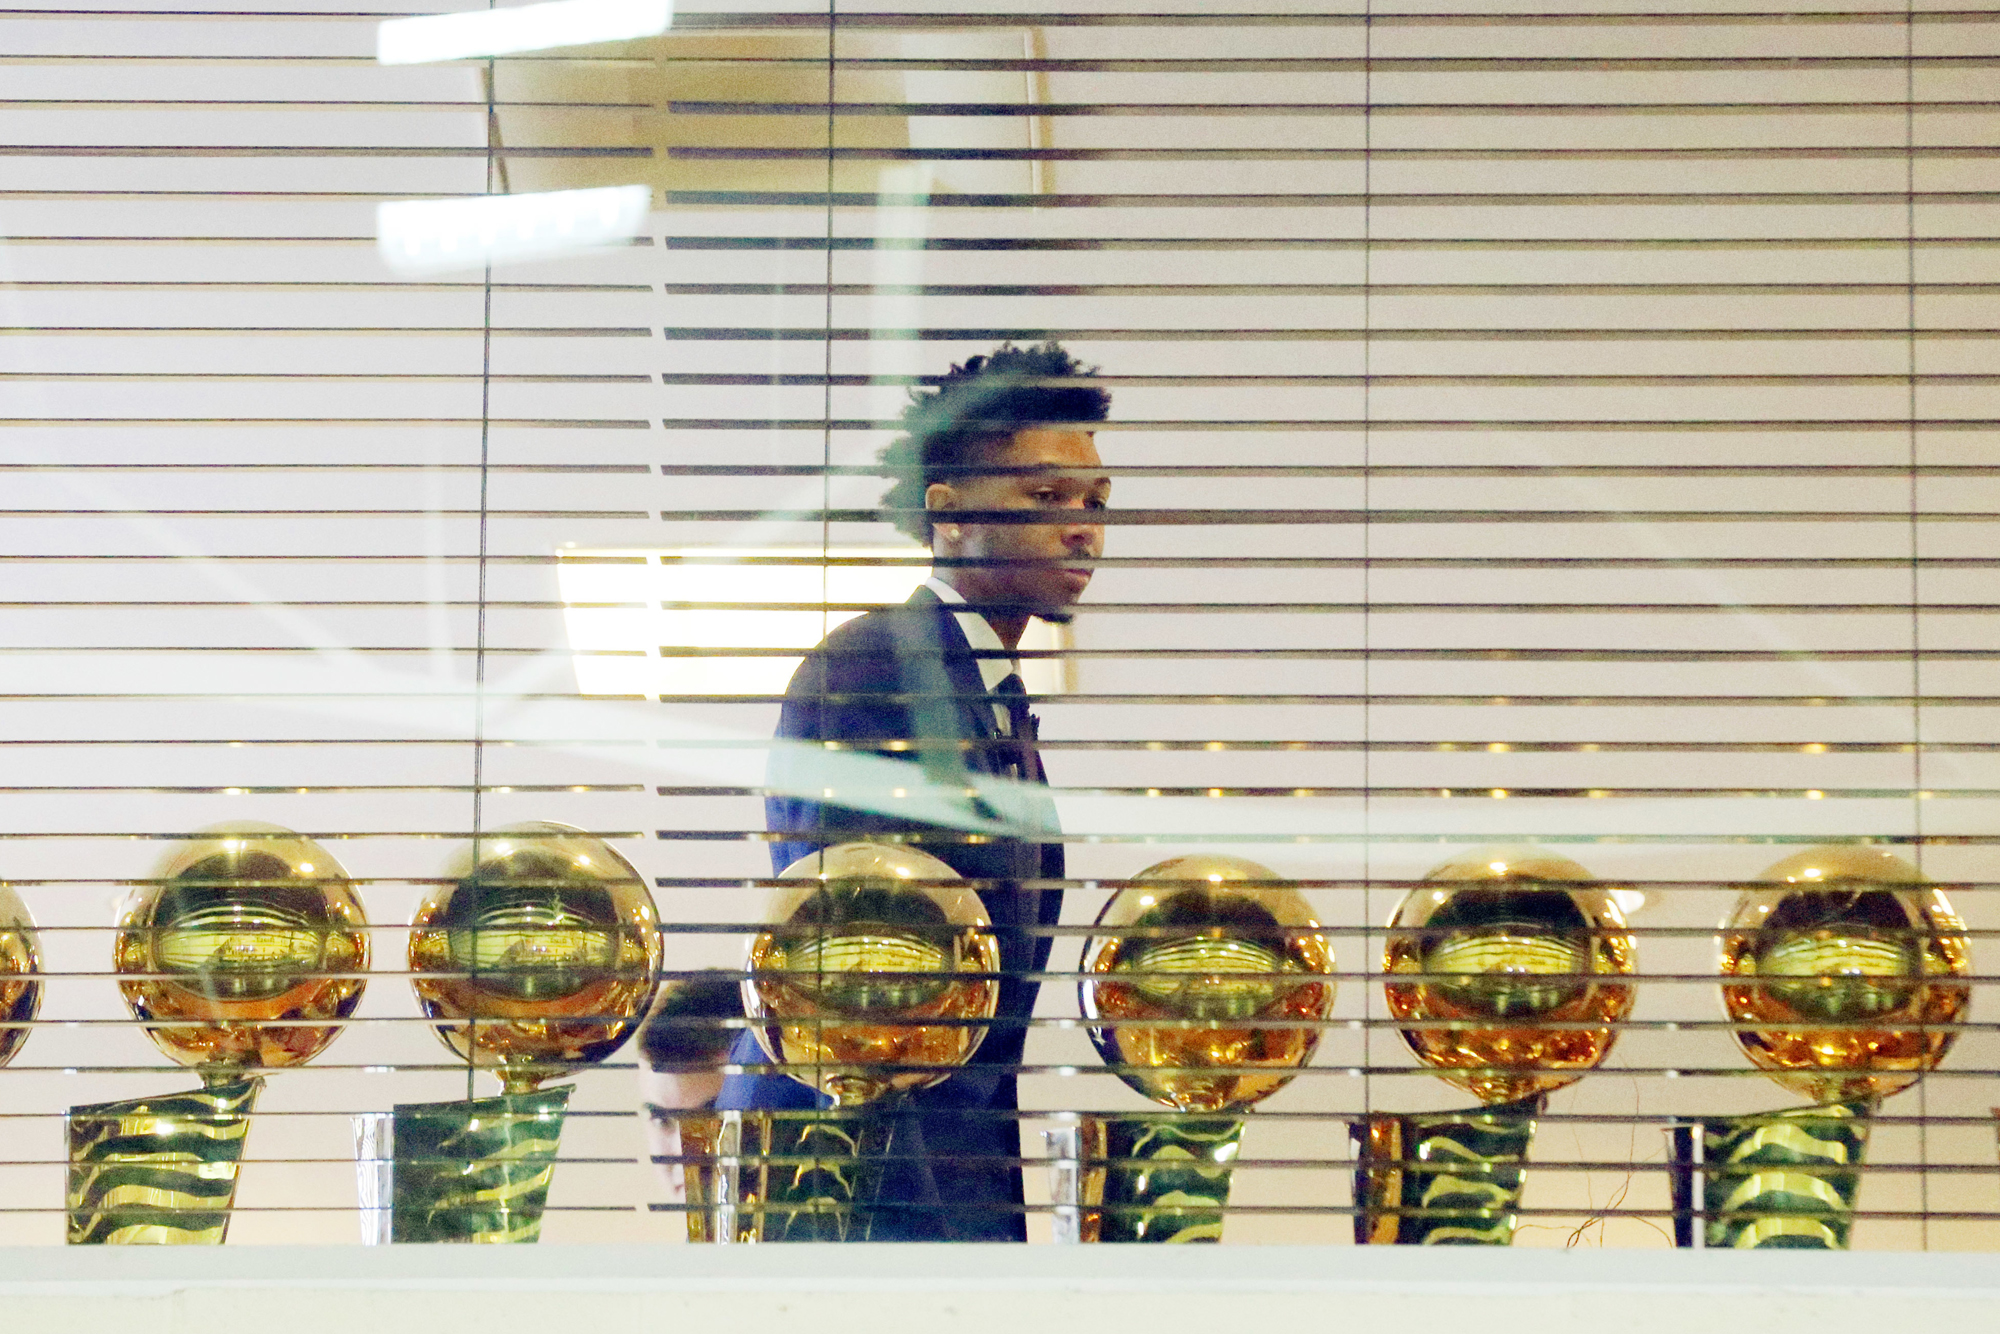 The Los Angeles Lakers' No. 2 draft pick Brandon Ingram looks at Lakers championship trophies in a room overlooking the basketball court before he is introduced at the NBA team's headquarters in El Segundo, Calif., Tuesday, July 5, 2016.